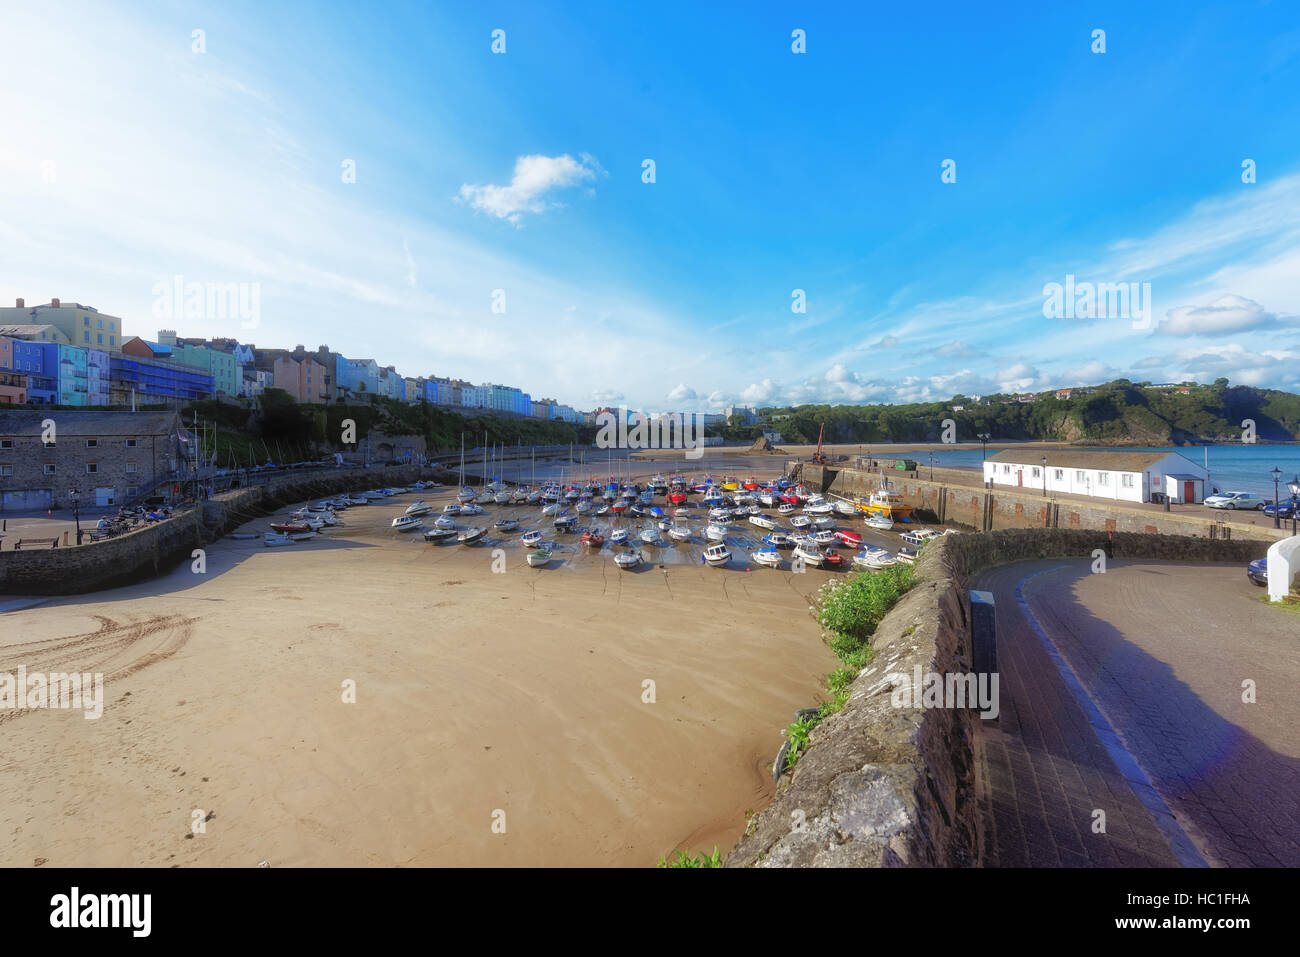 Glorious Sunny day in Tenby, Overlooking the Harbour - Stock Image